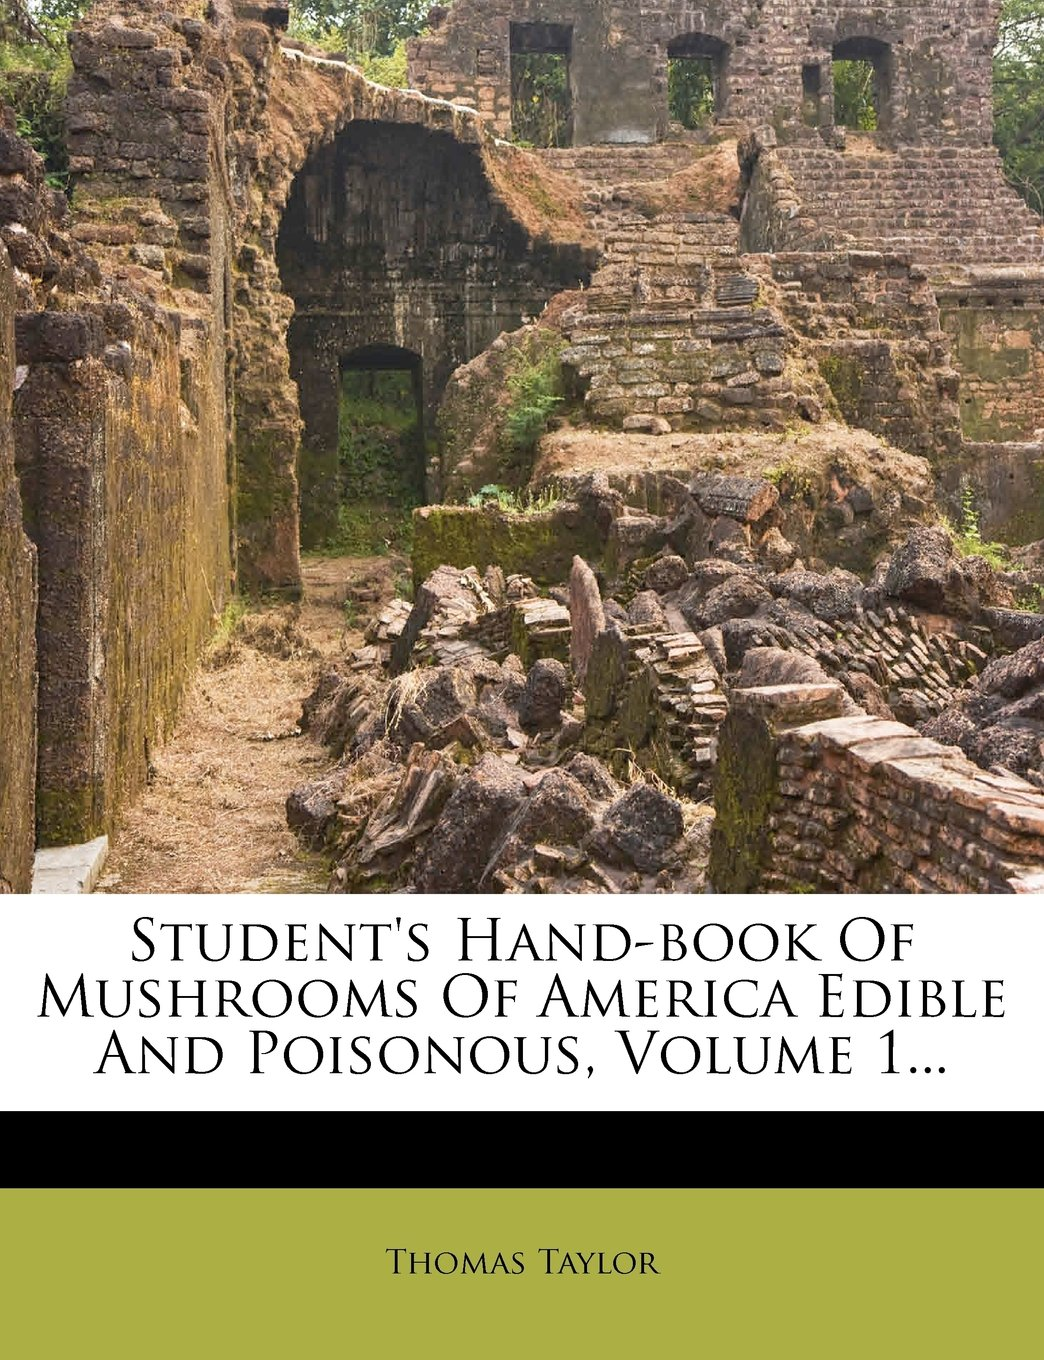 Student's Hand-book Of Mushrooms Of America Edible And Poisonous, Volume 1... pdf epub